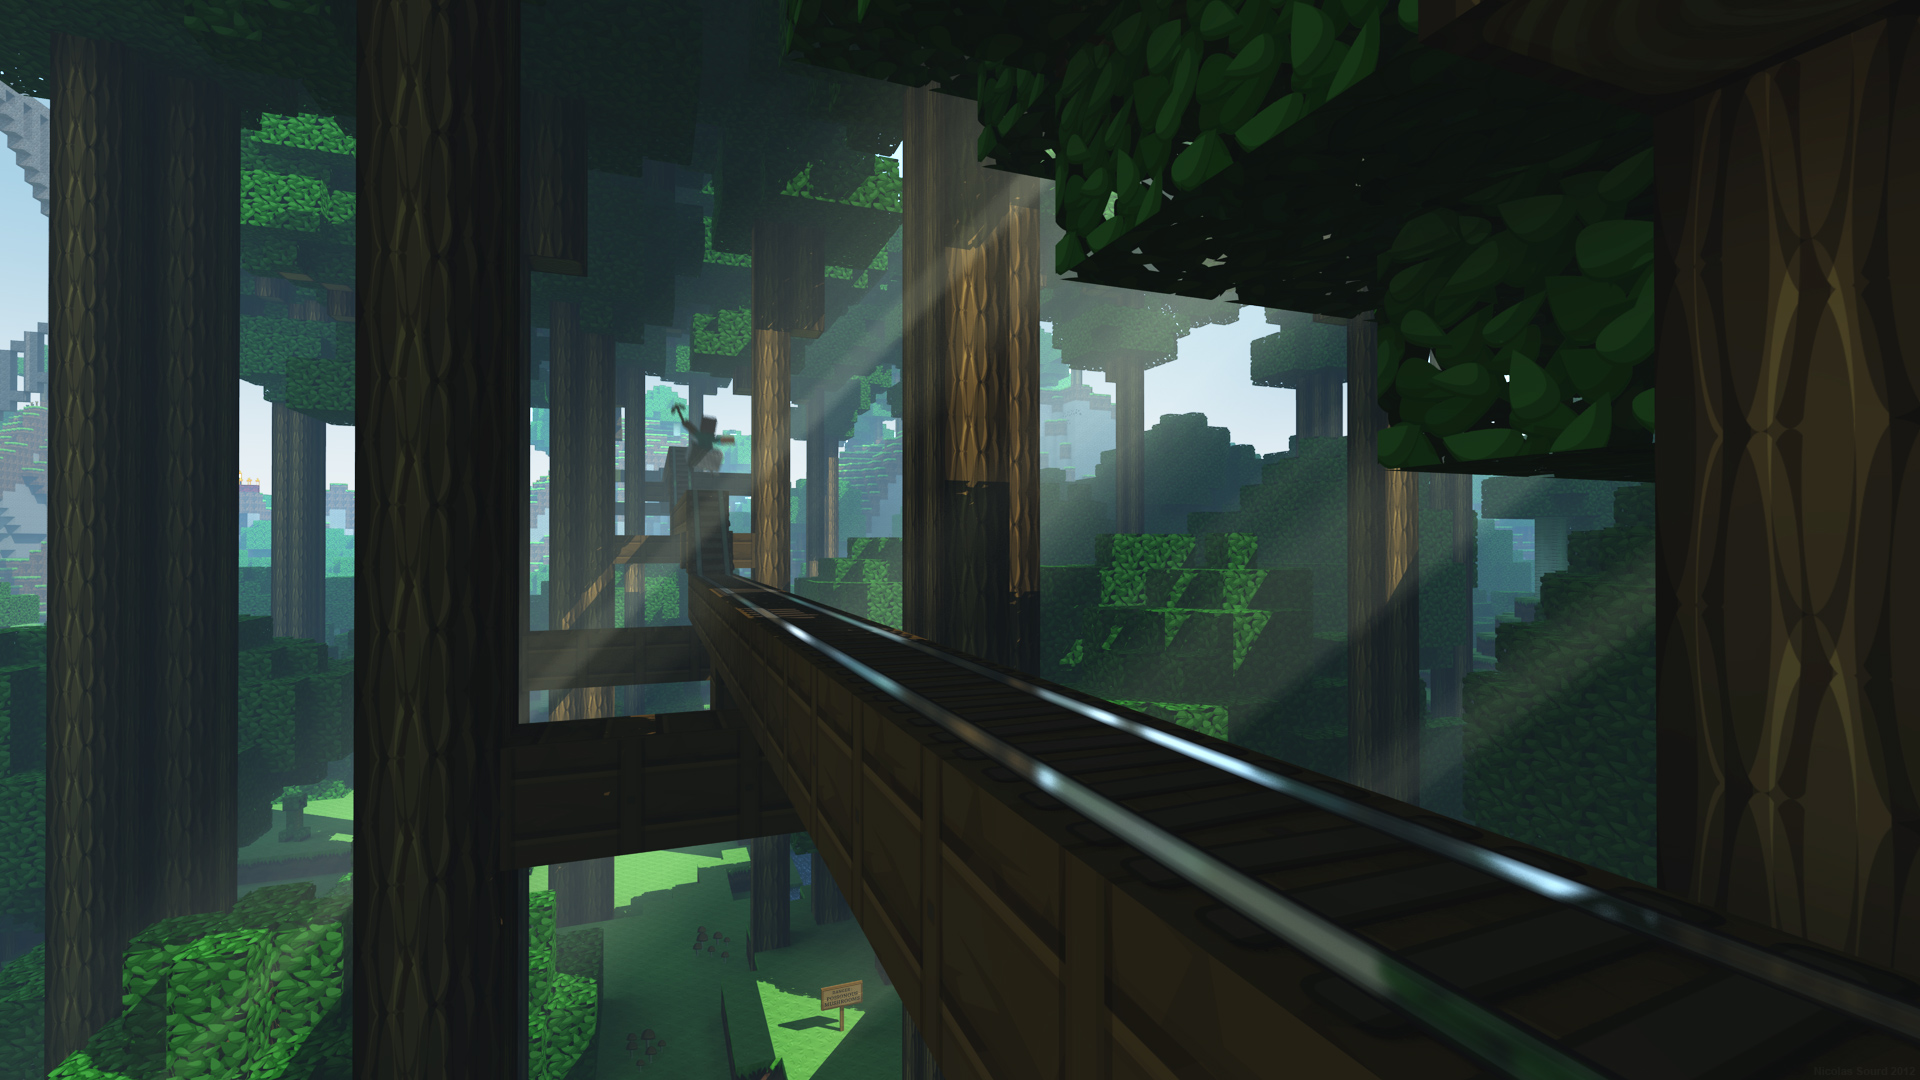 minecraft desktop backgrounds A2